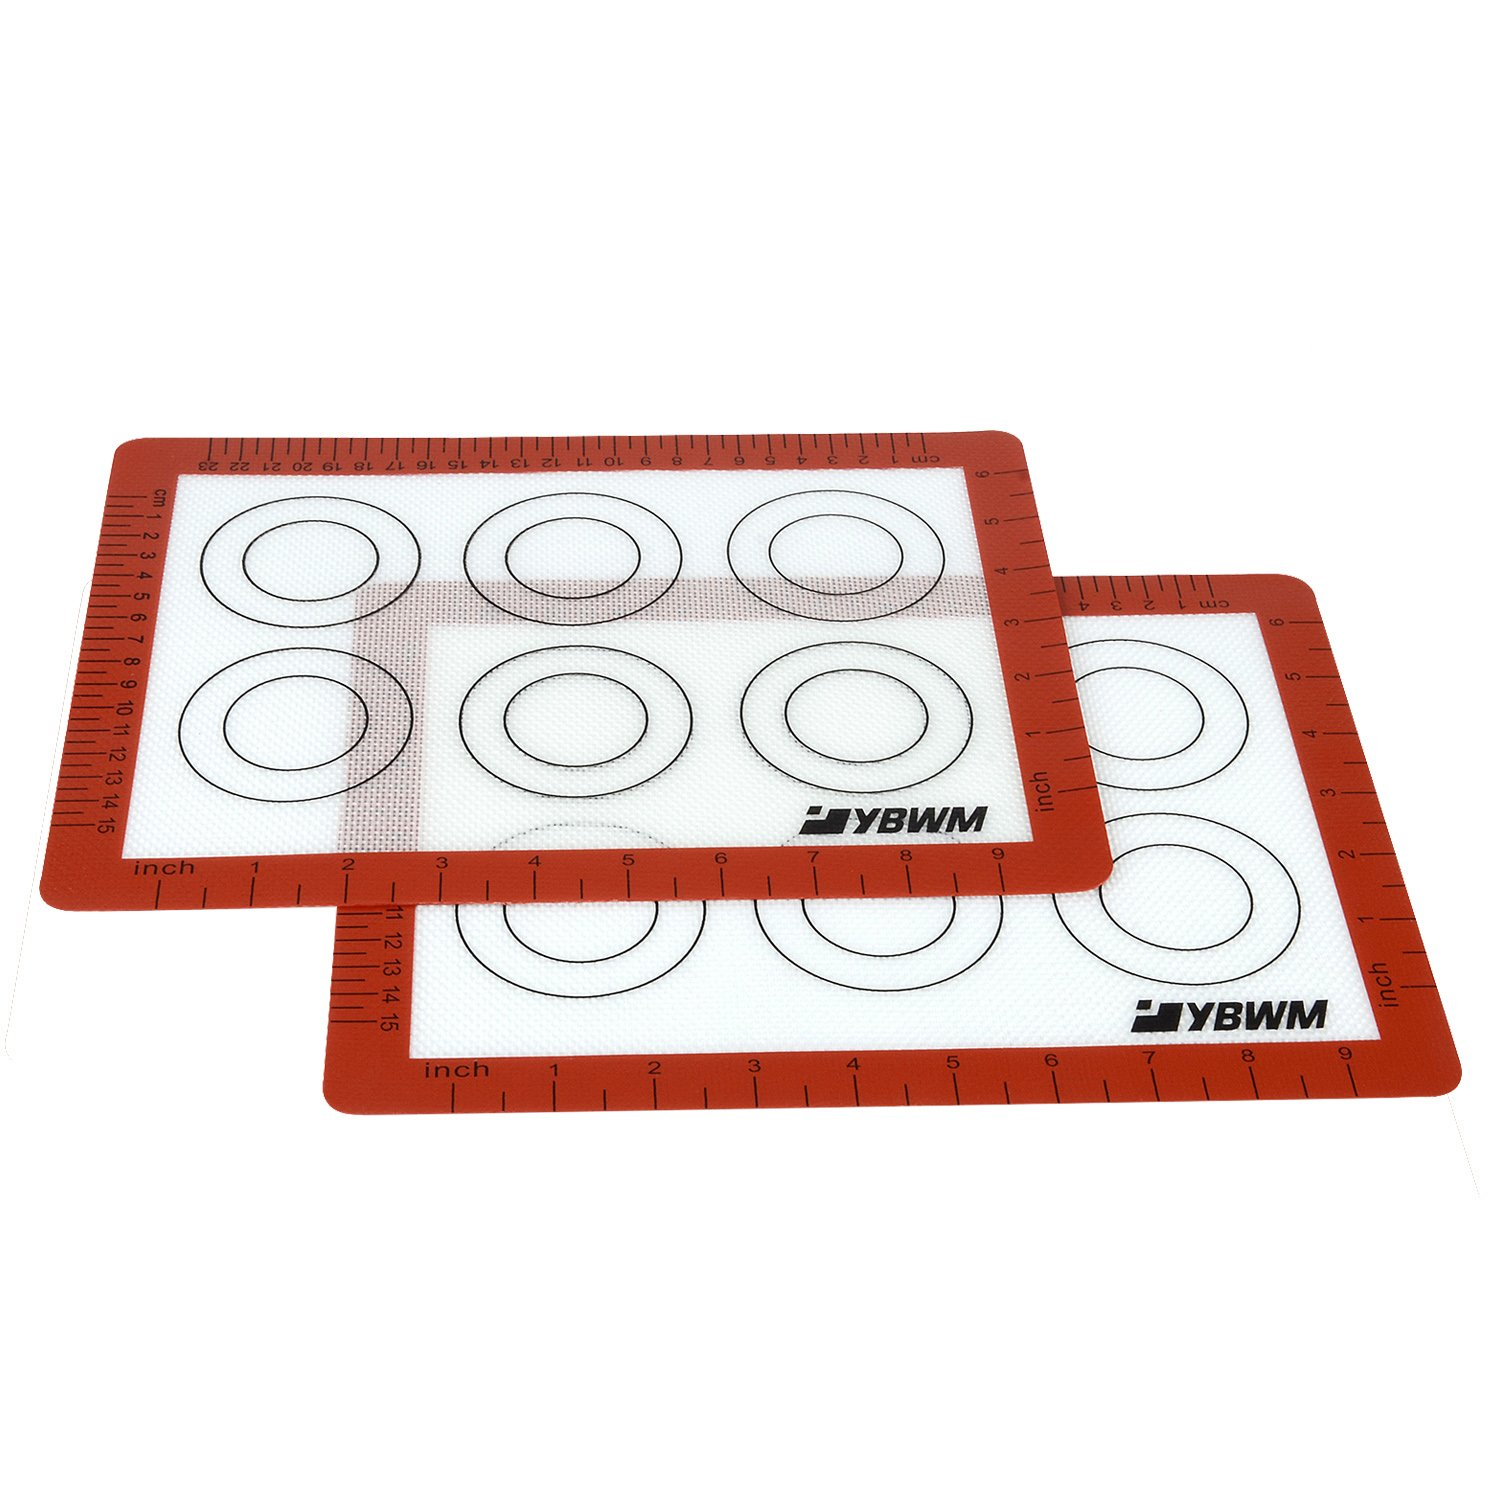 Silicone Baking Mats, Cookie Sheets for Baking Non Stick Half Sheet, YBWM Cookie Mats for Cookie Sheet Pans (16.5x11.6inch) YBWM-US-SSH-201